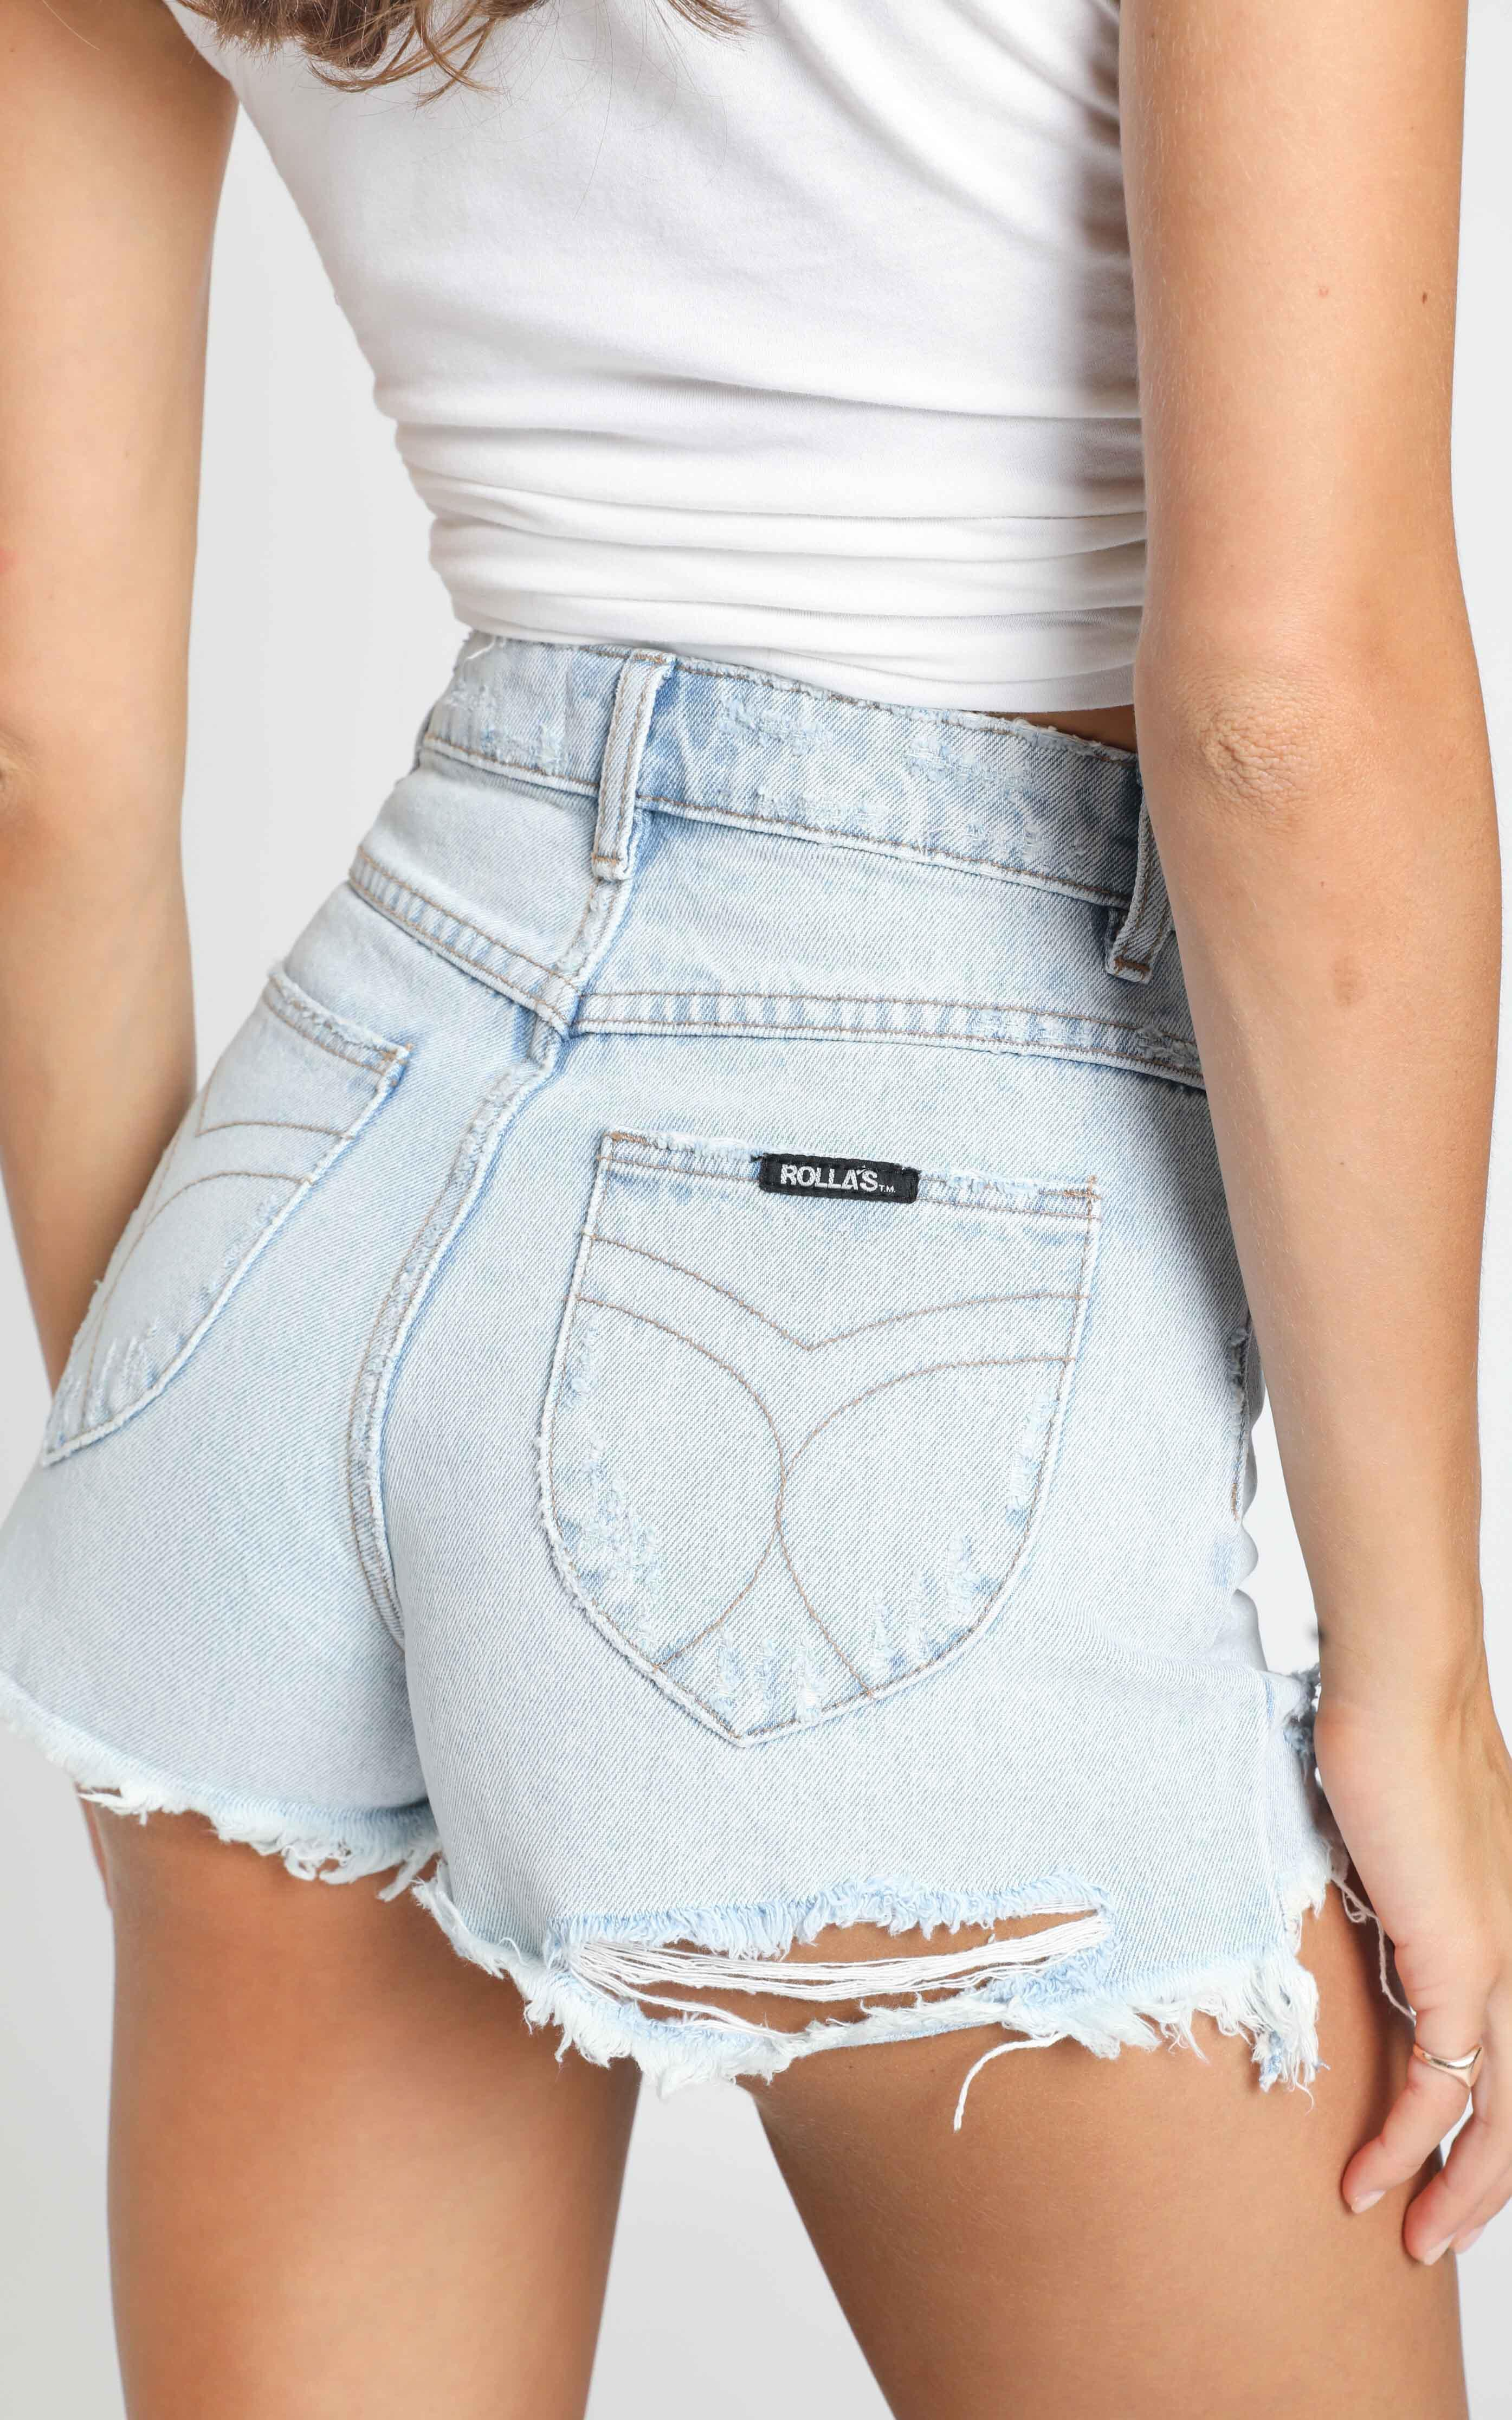 Rollas x Sofia Richie - Dusters Denim Short In Layla Bleach - 14 (XL), Blue, hi-res image number null